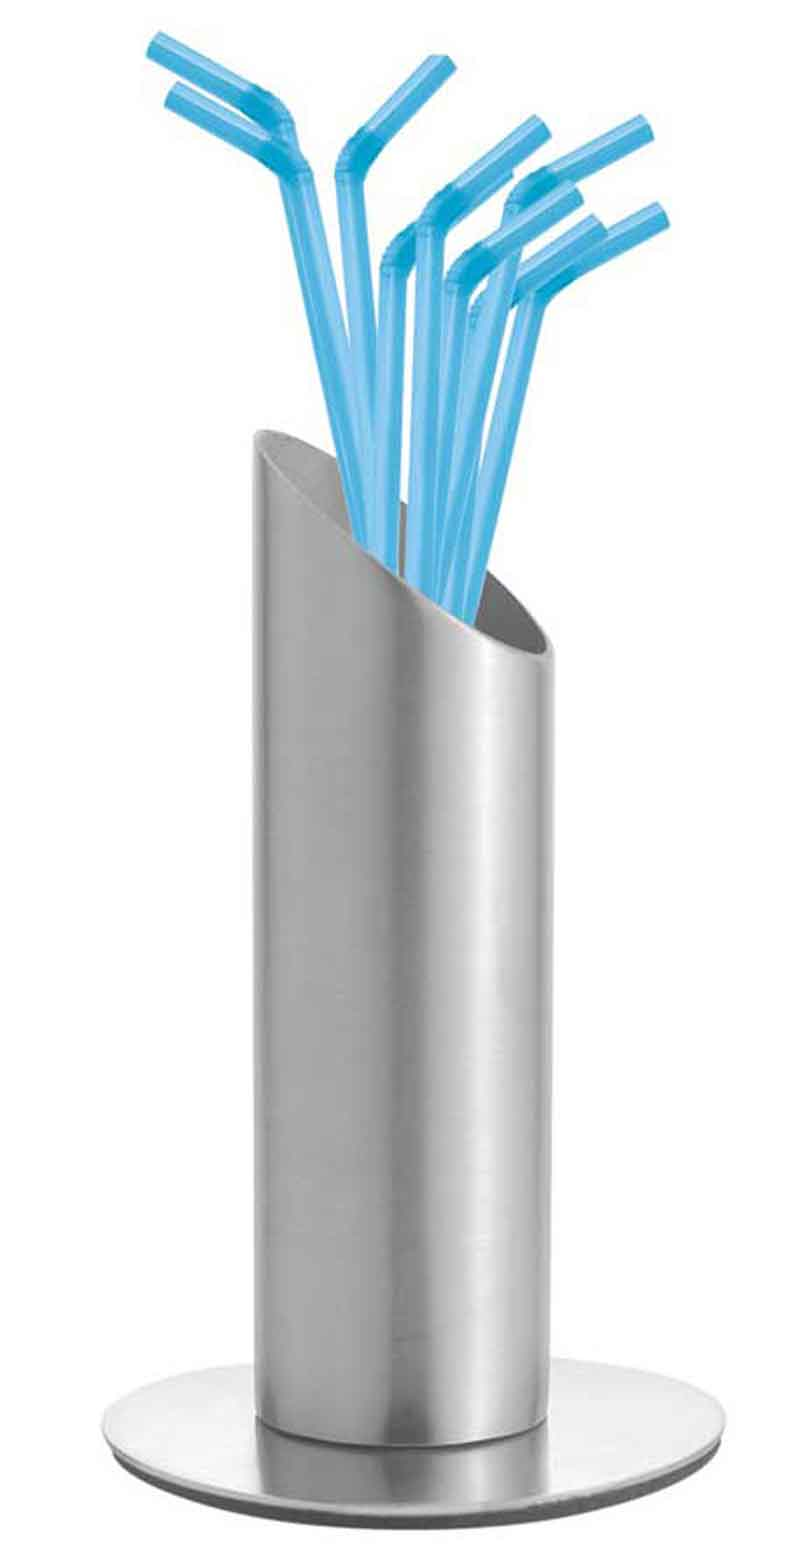 Straw Holder Straw Holders Straw Holder Manufacturers